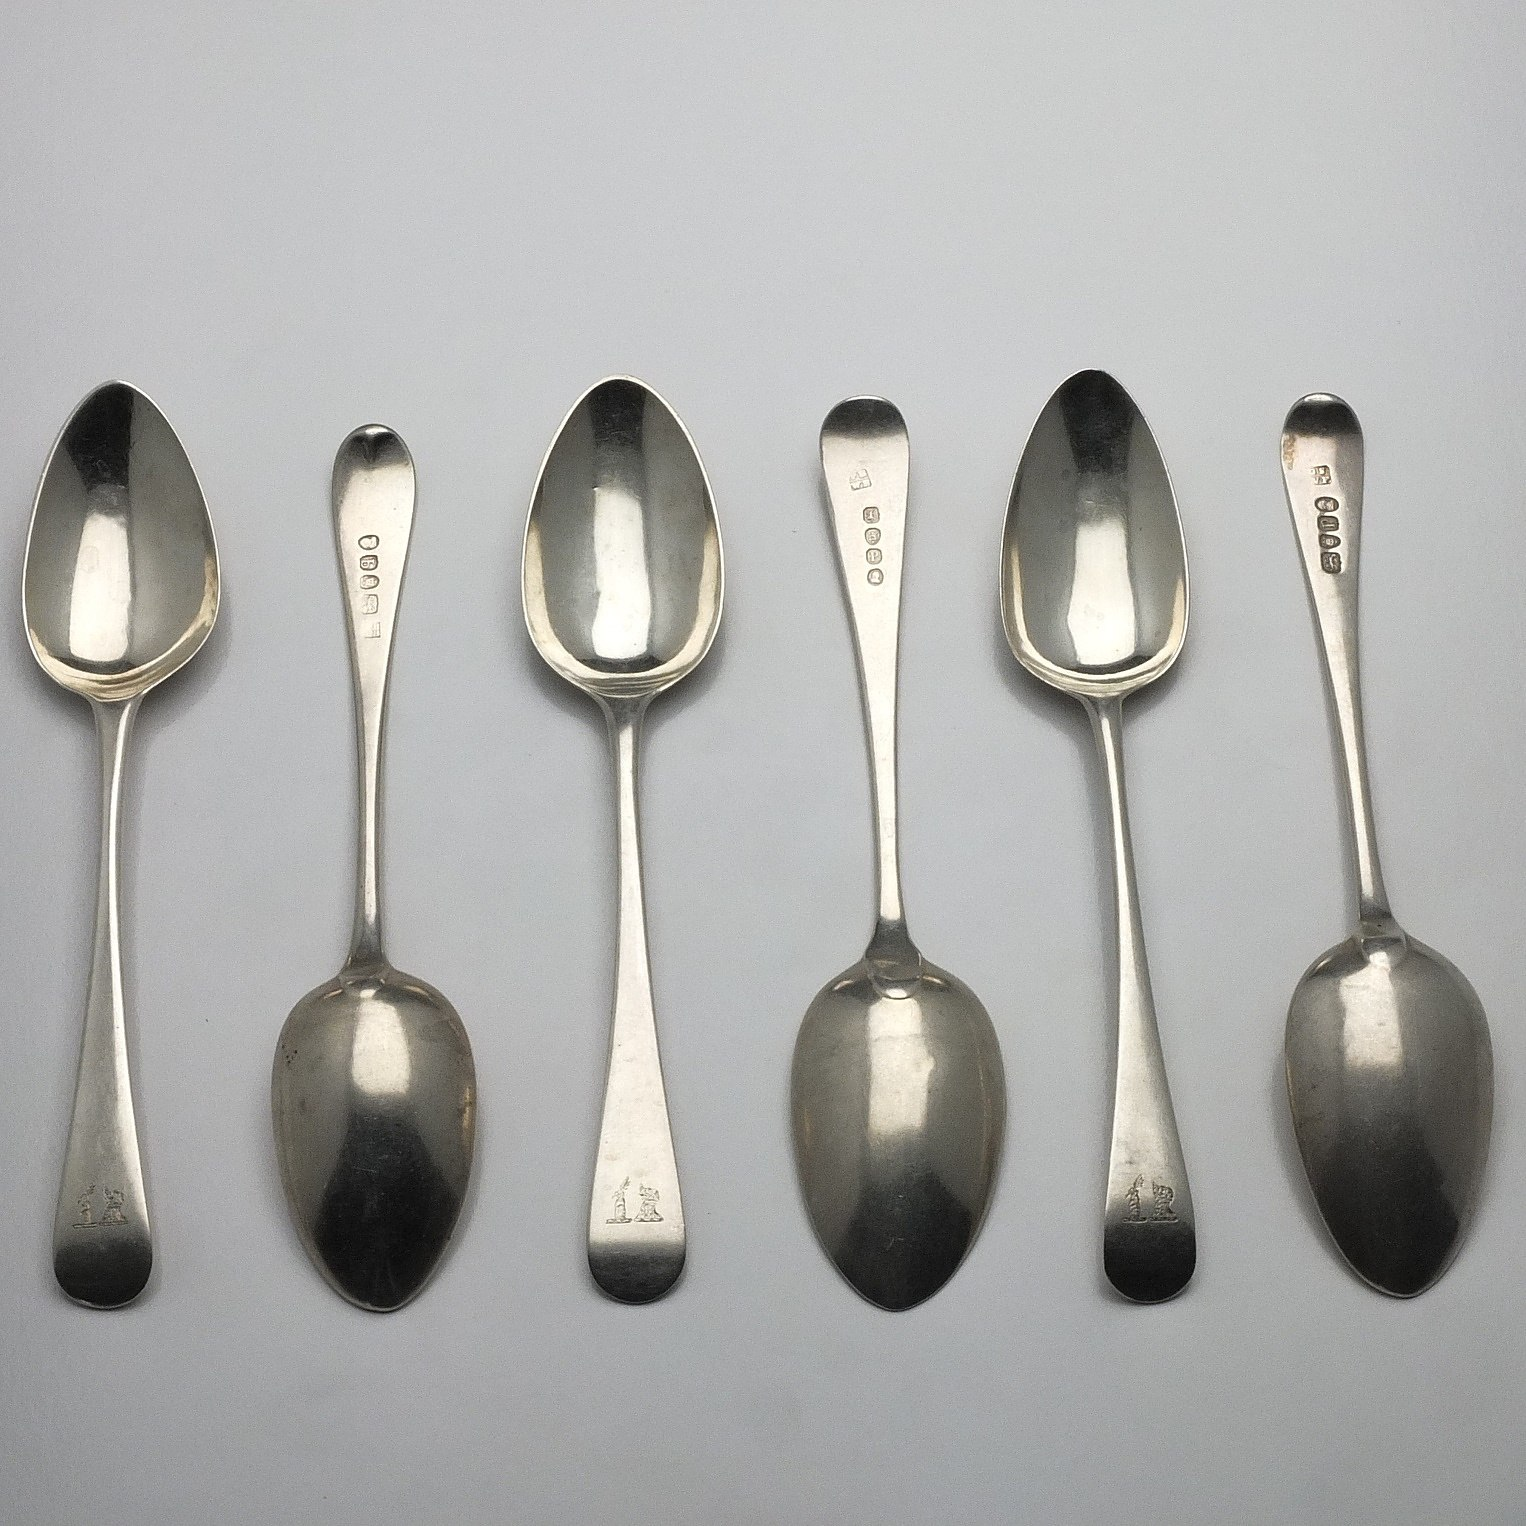 'Six George III Crested Sterling Silver Spoons Including Two George Smith III & William Fearn London 1790'